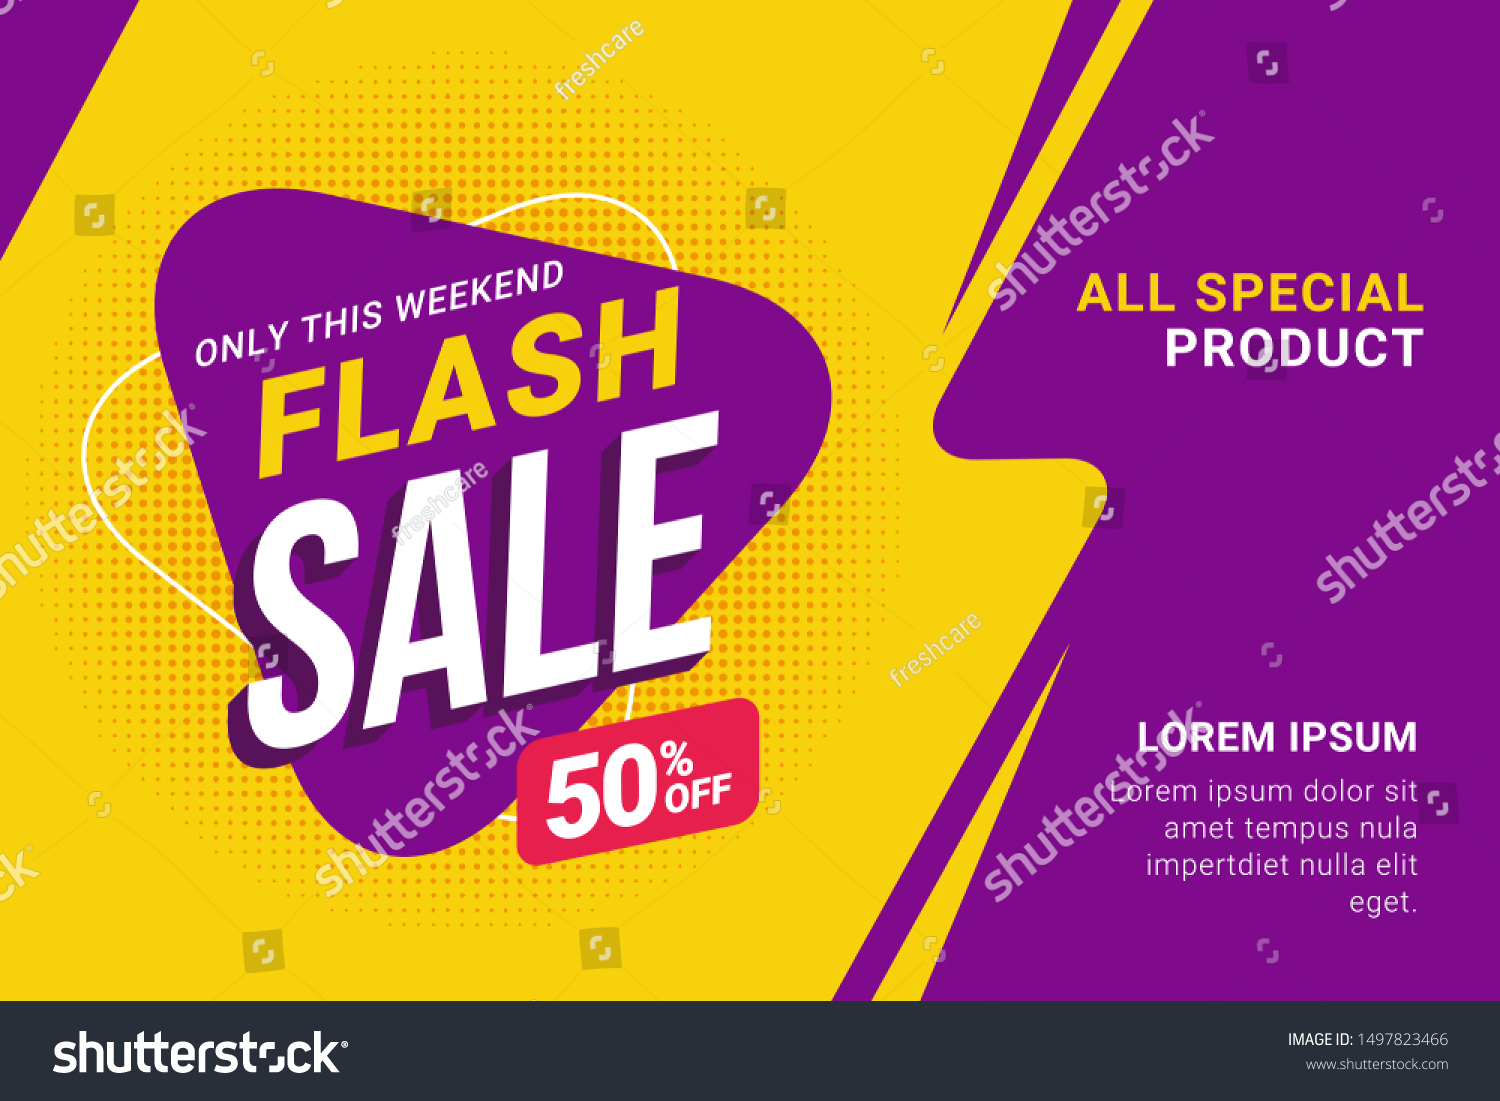 Flash sale discount banner template promotion #1497823466